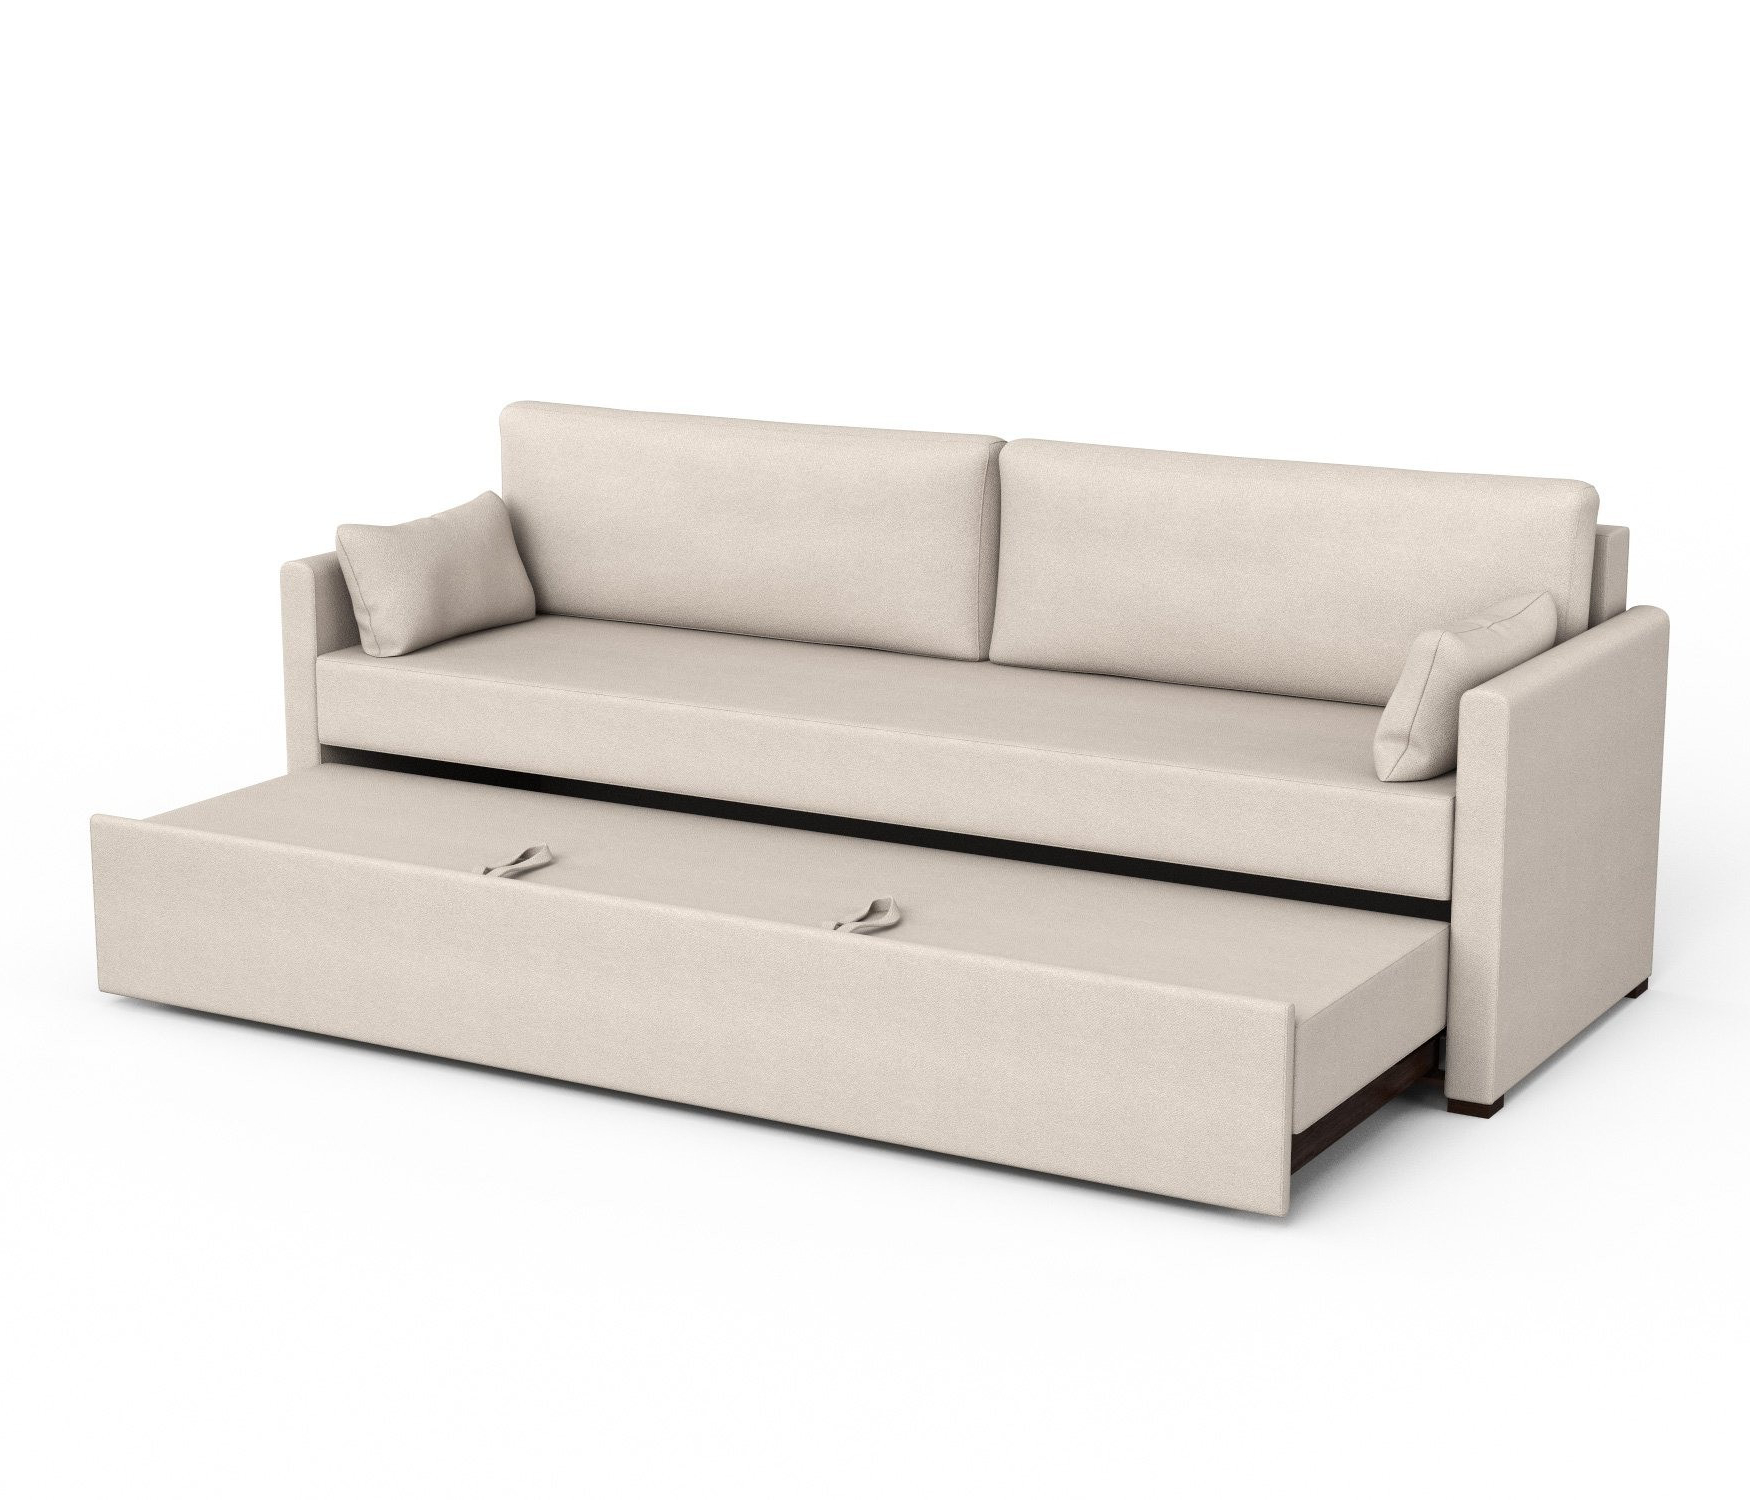 Sofas Cama Cruces Dddy sofas Camas Cruces En Importante sofa Camas Leather Sectional sofa